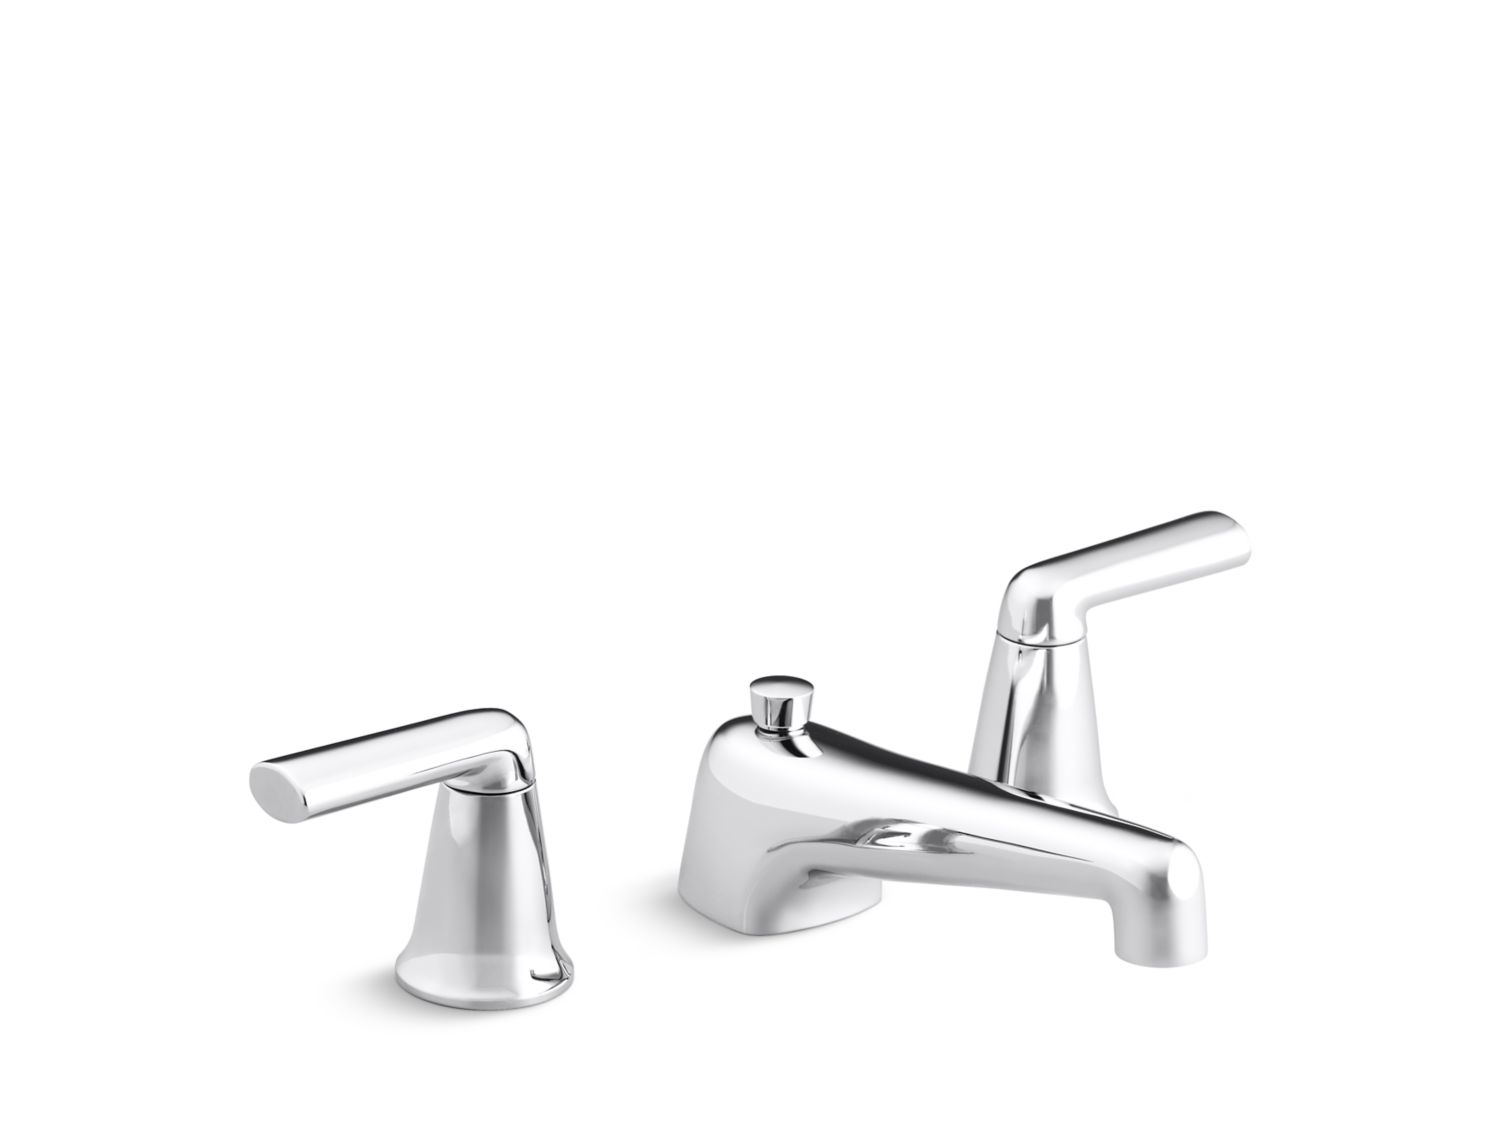 Counterpoint by Barbara Barry Sink Faucet, Lever Handles   P23200-LV ...